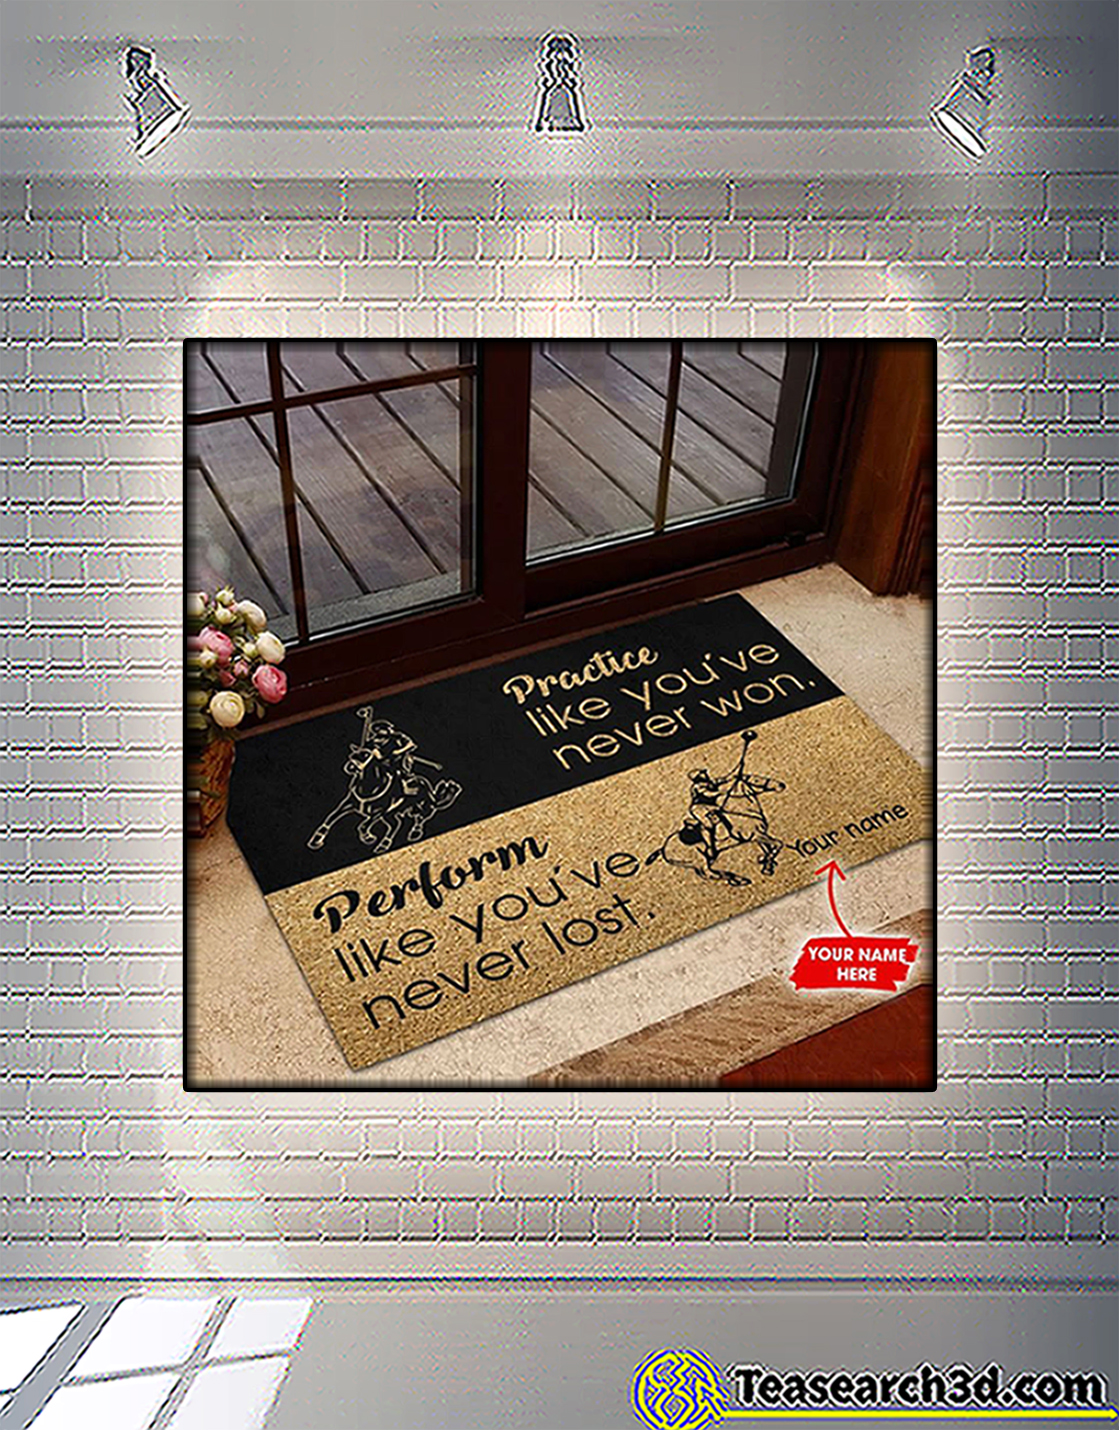 Personalized custom name polocrosse practice like you've never won doormat 2